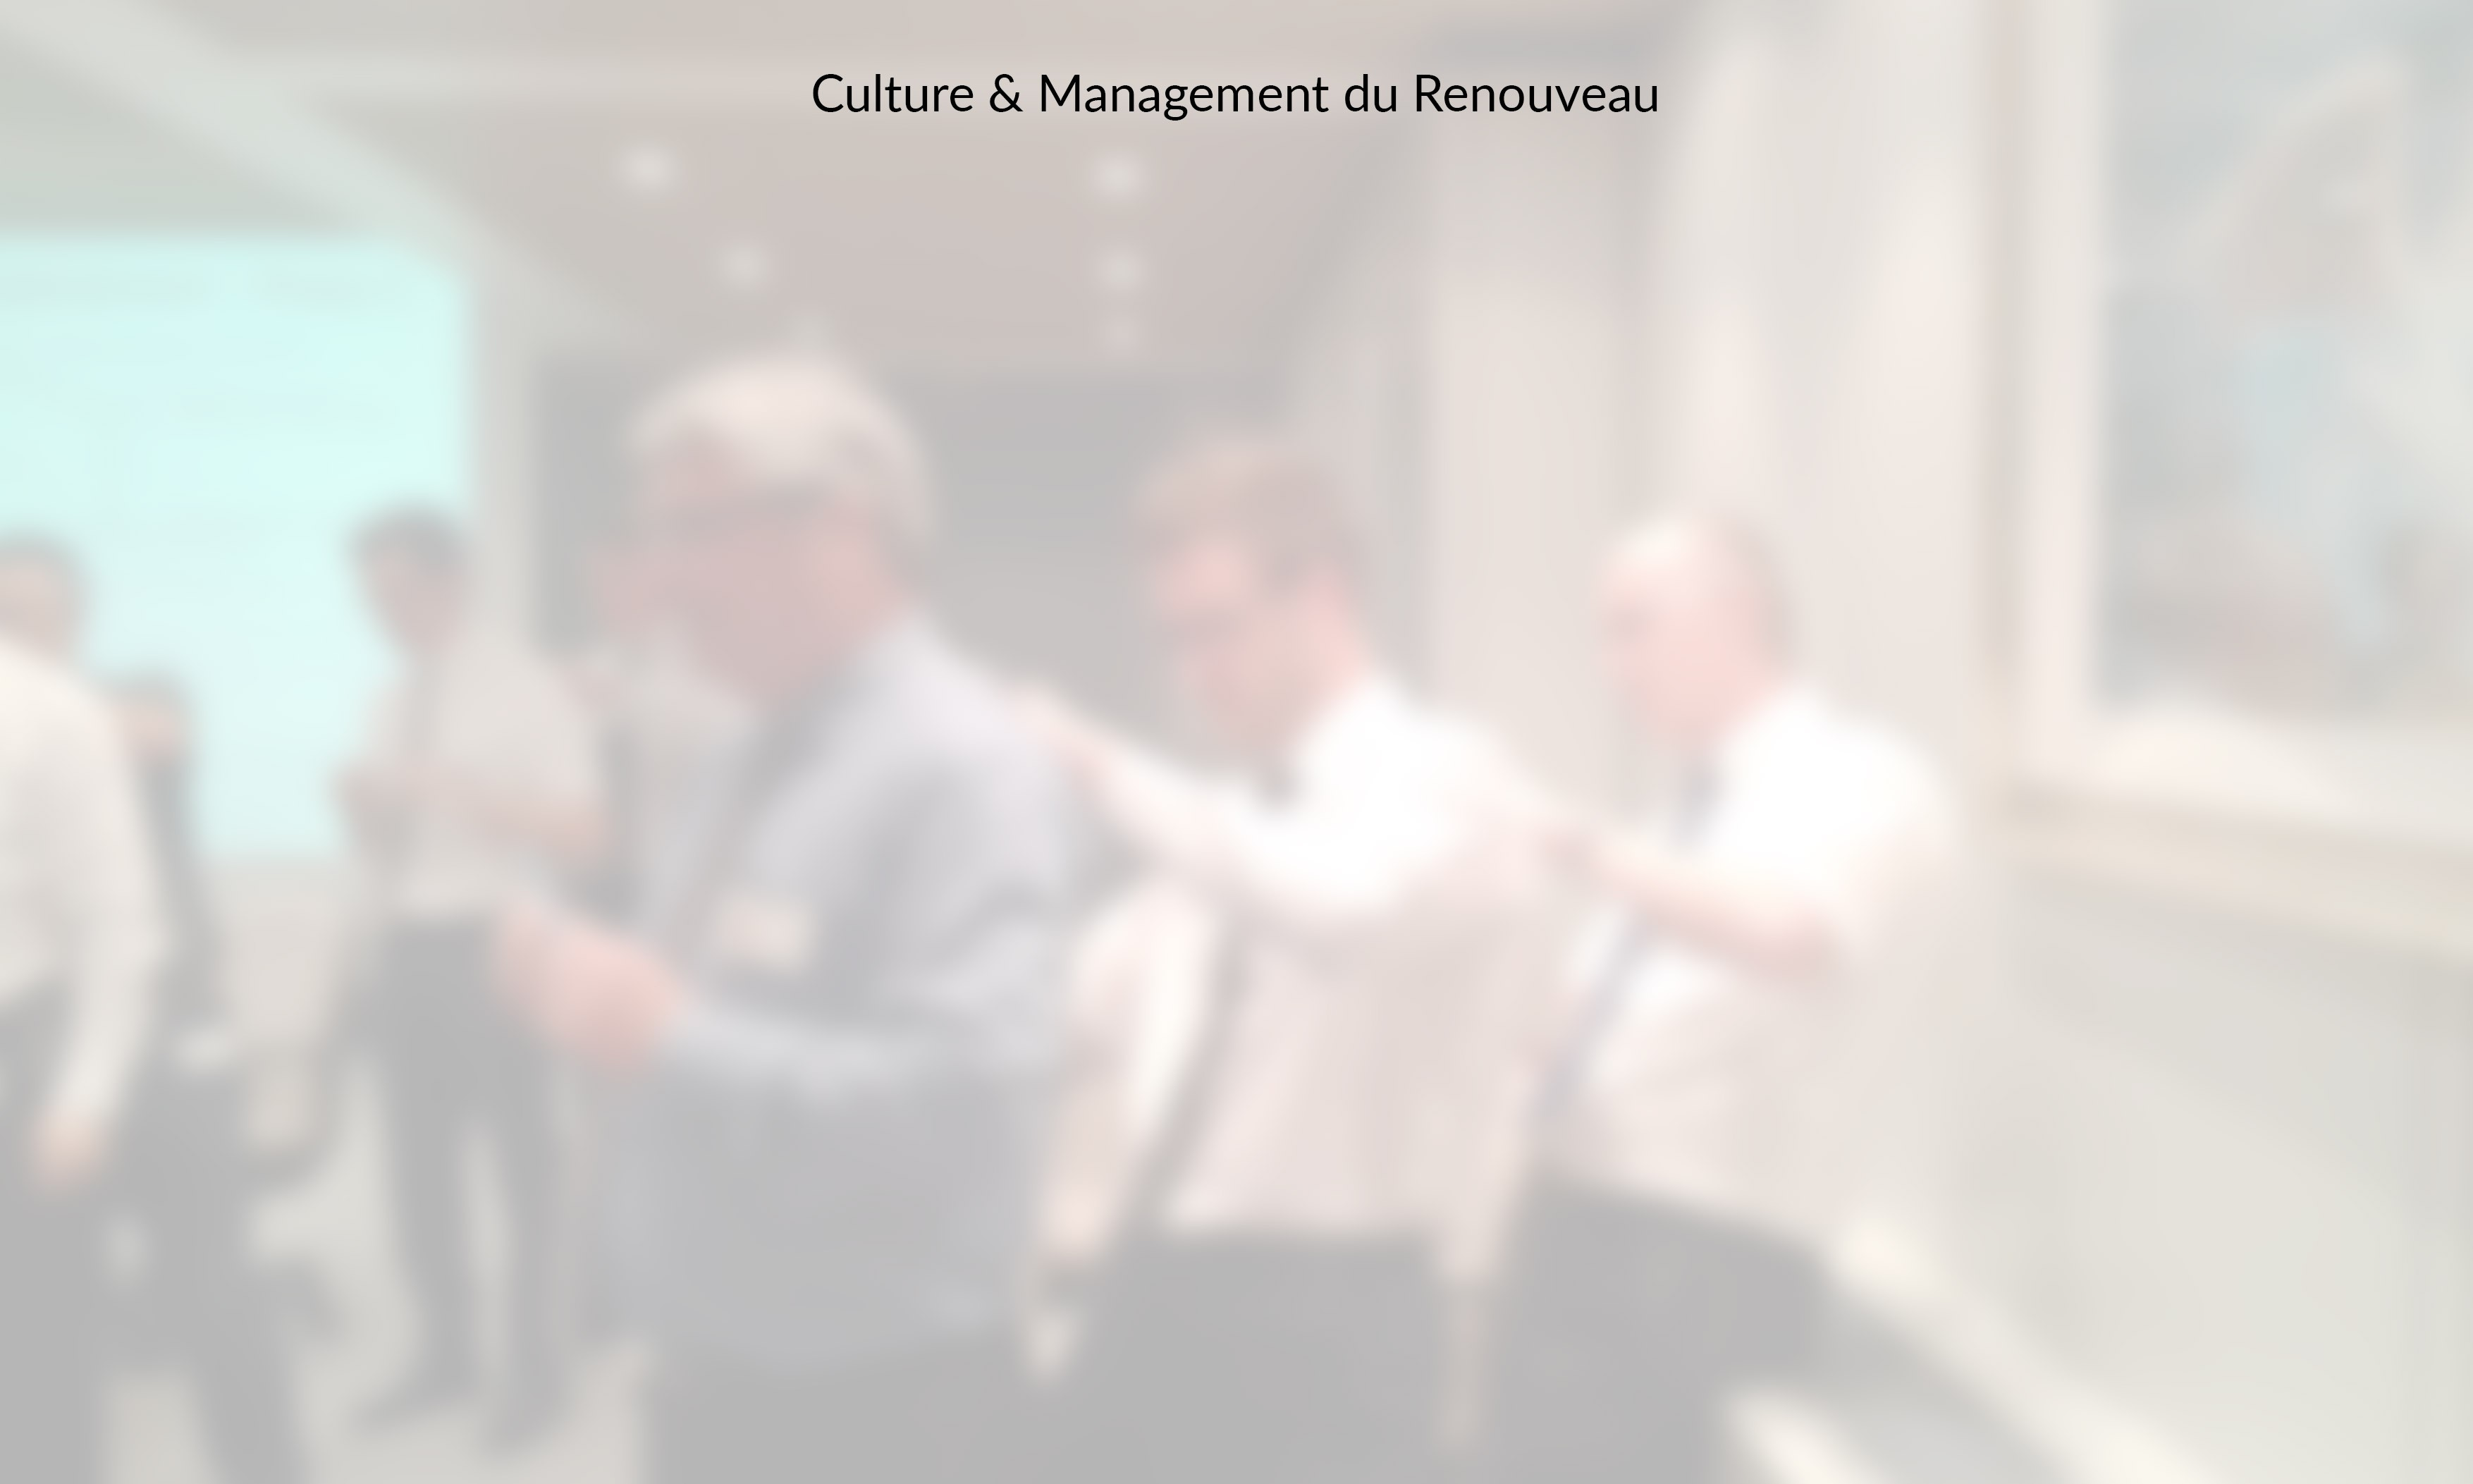 Culture & Management du Renouveau